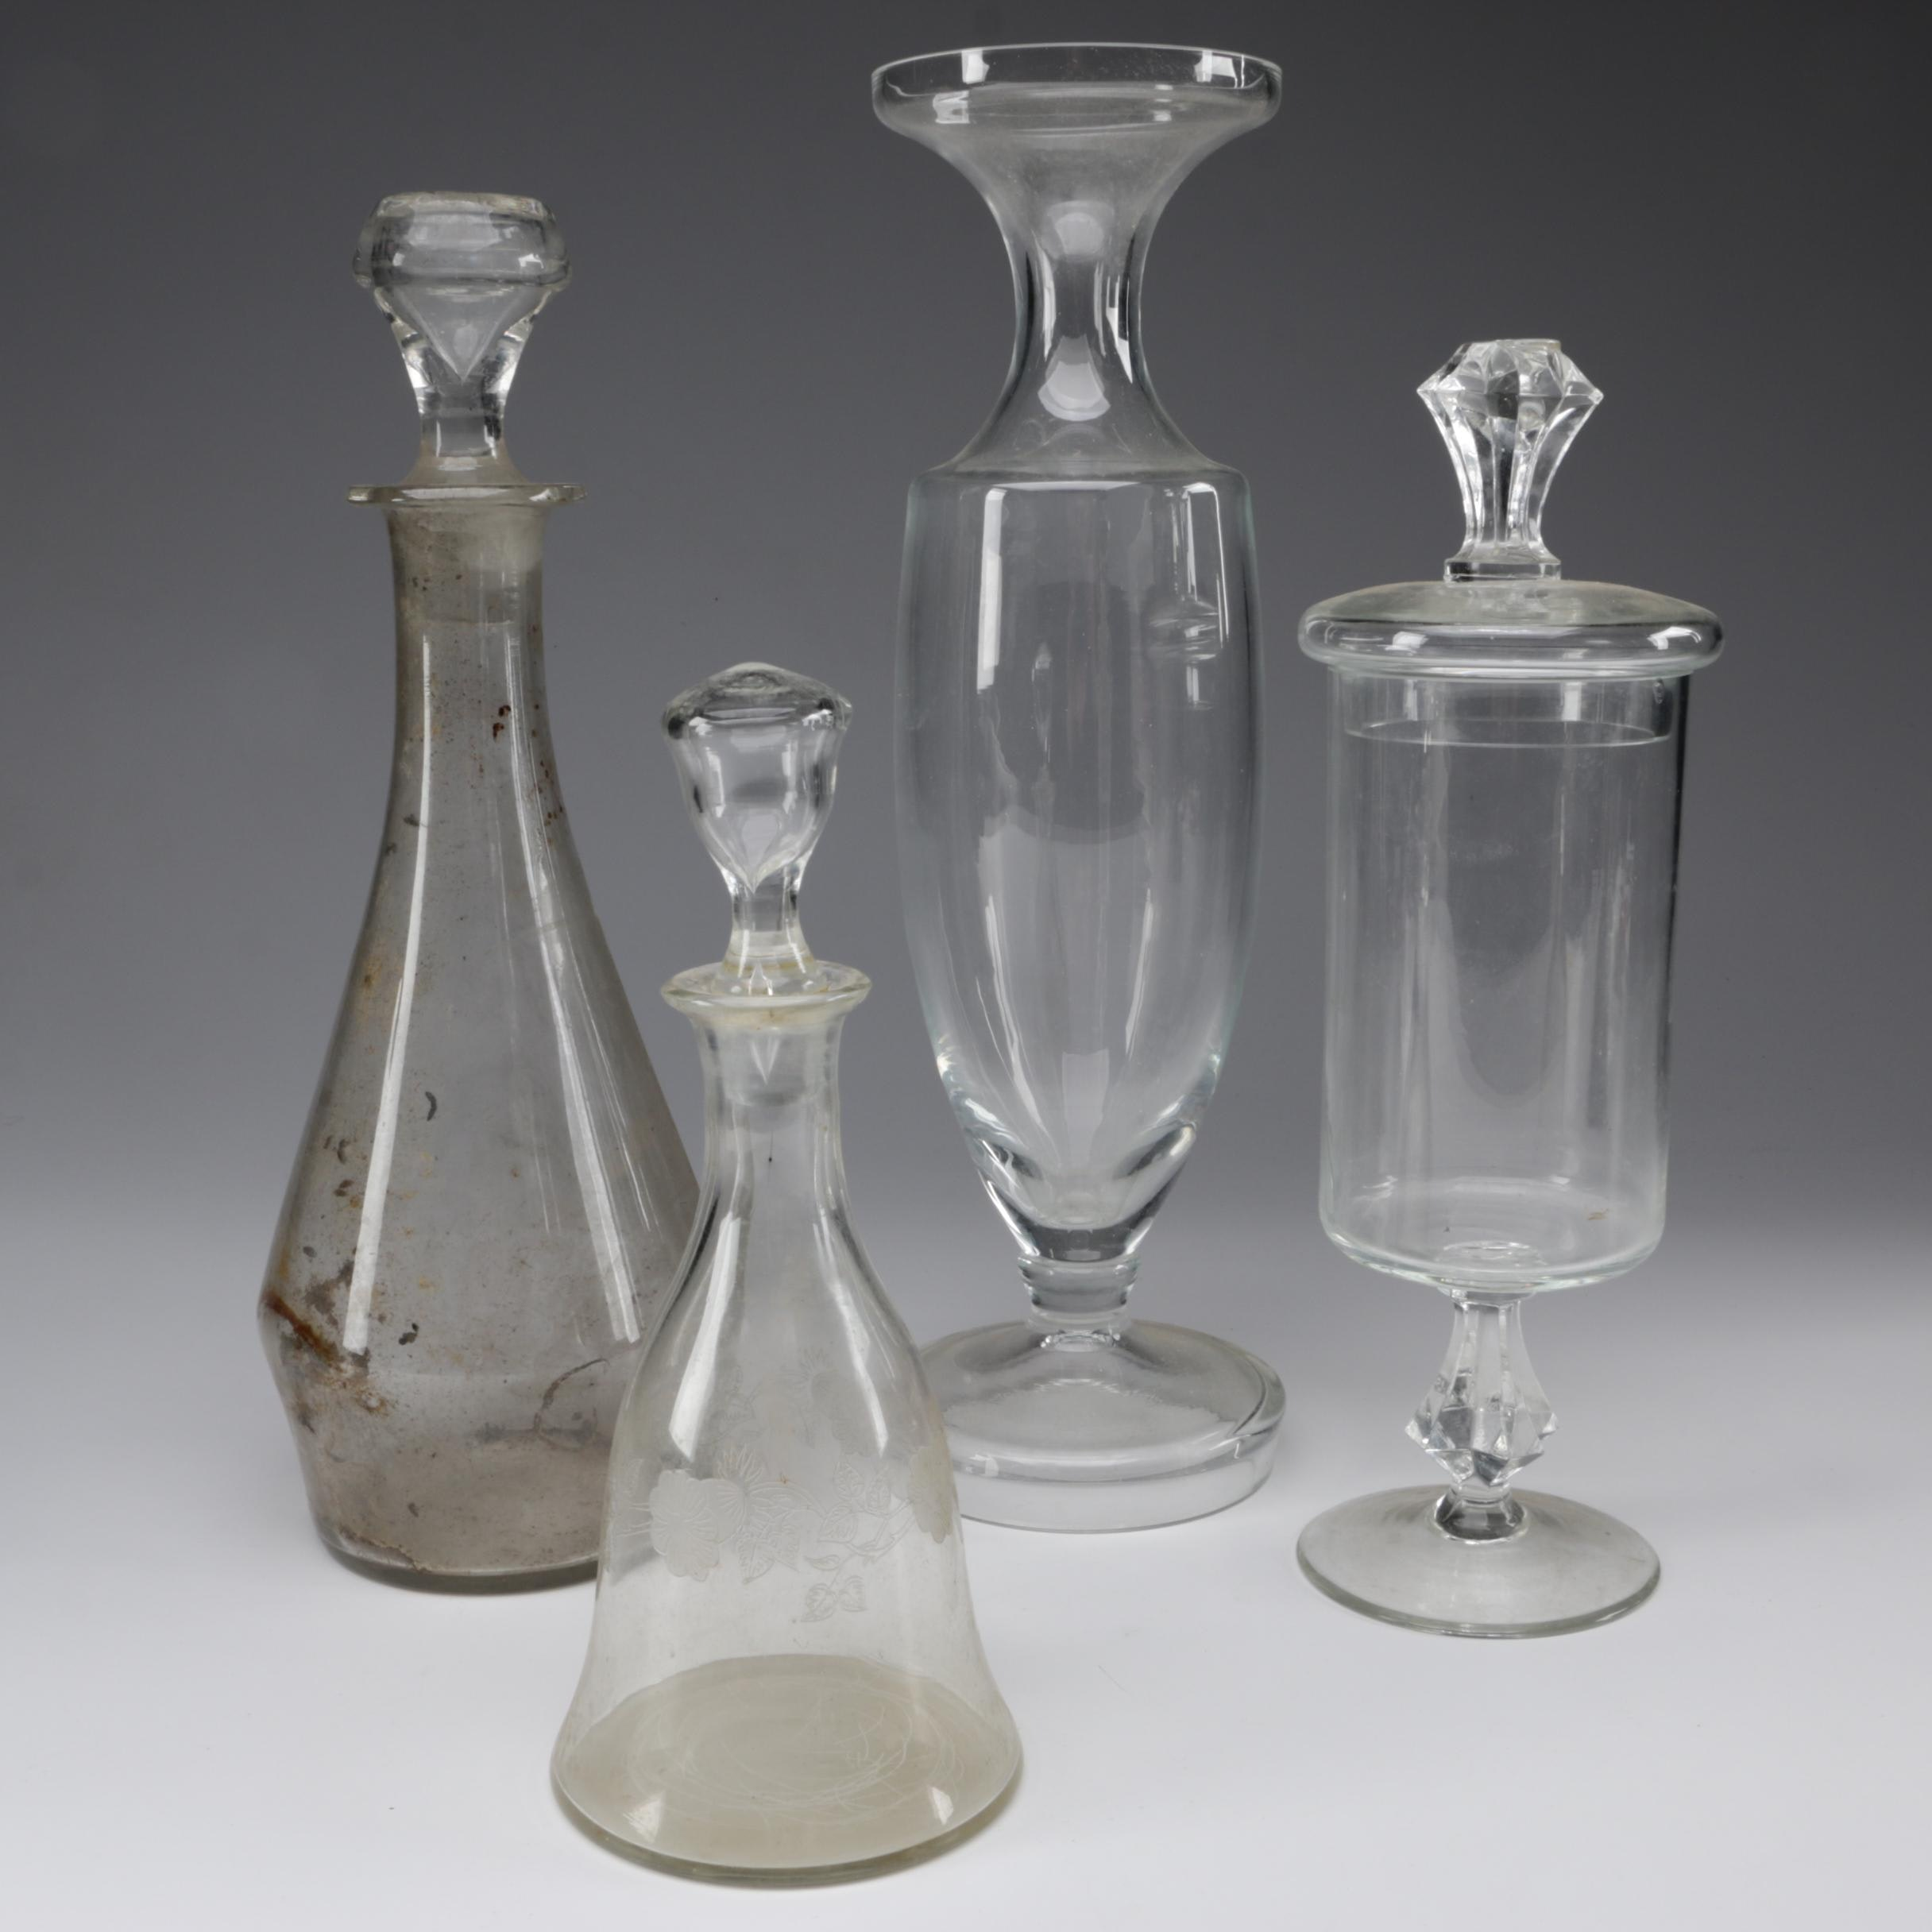 European Glass Decanters and Apothecary Jars, 20th Century